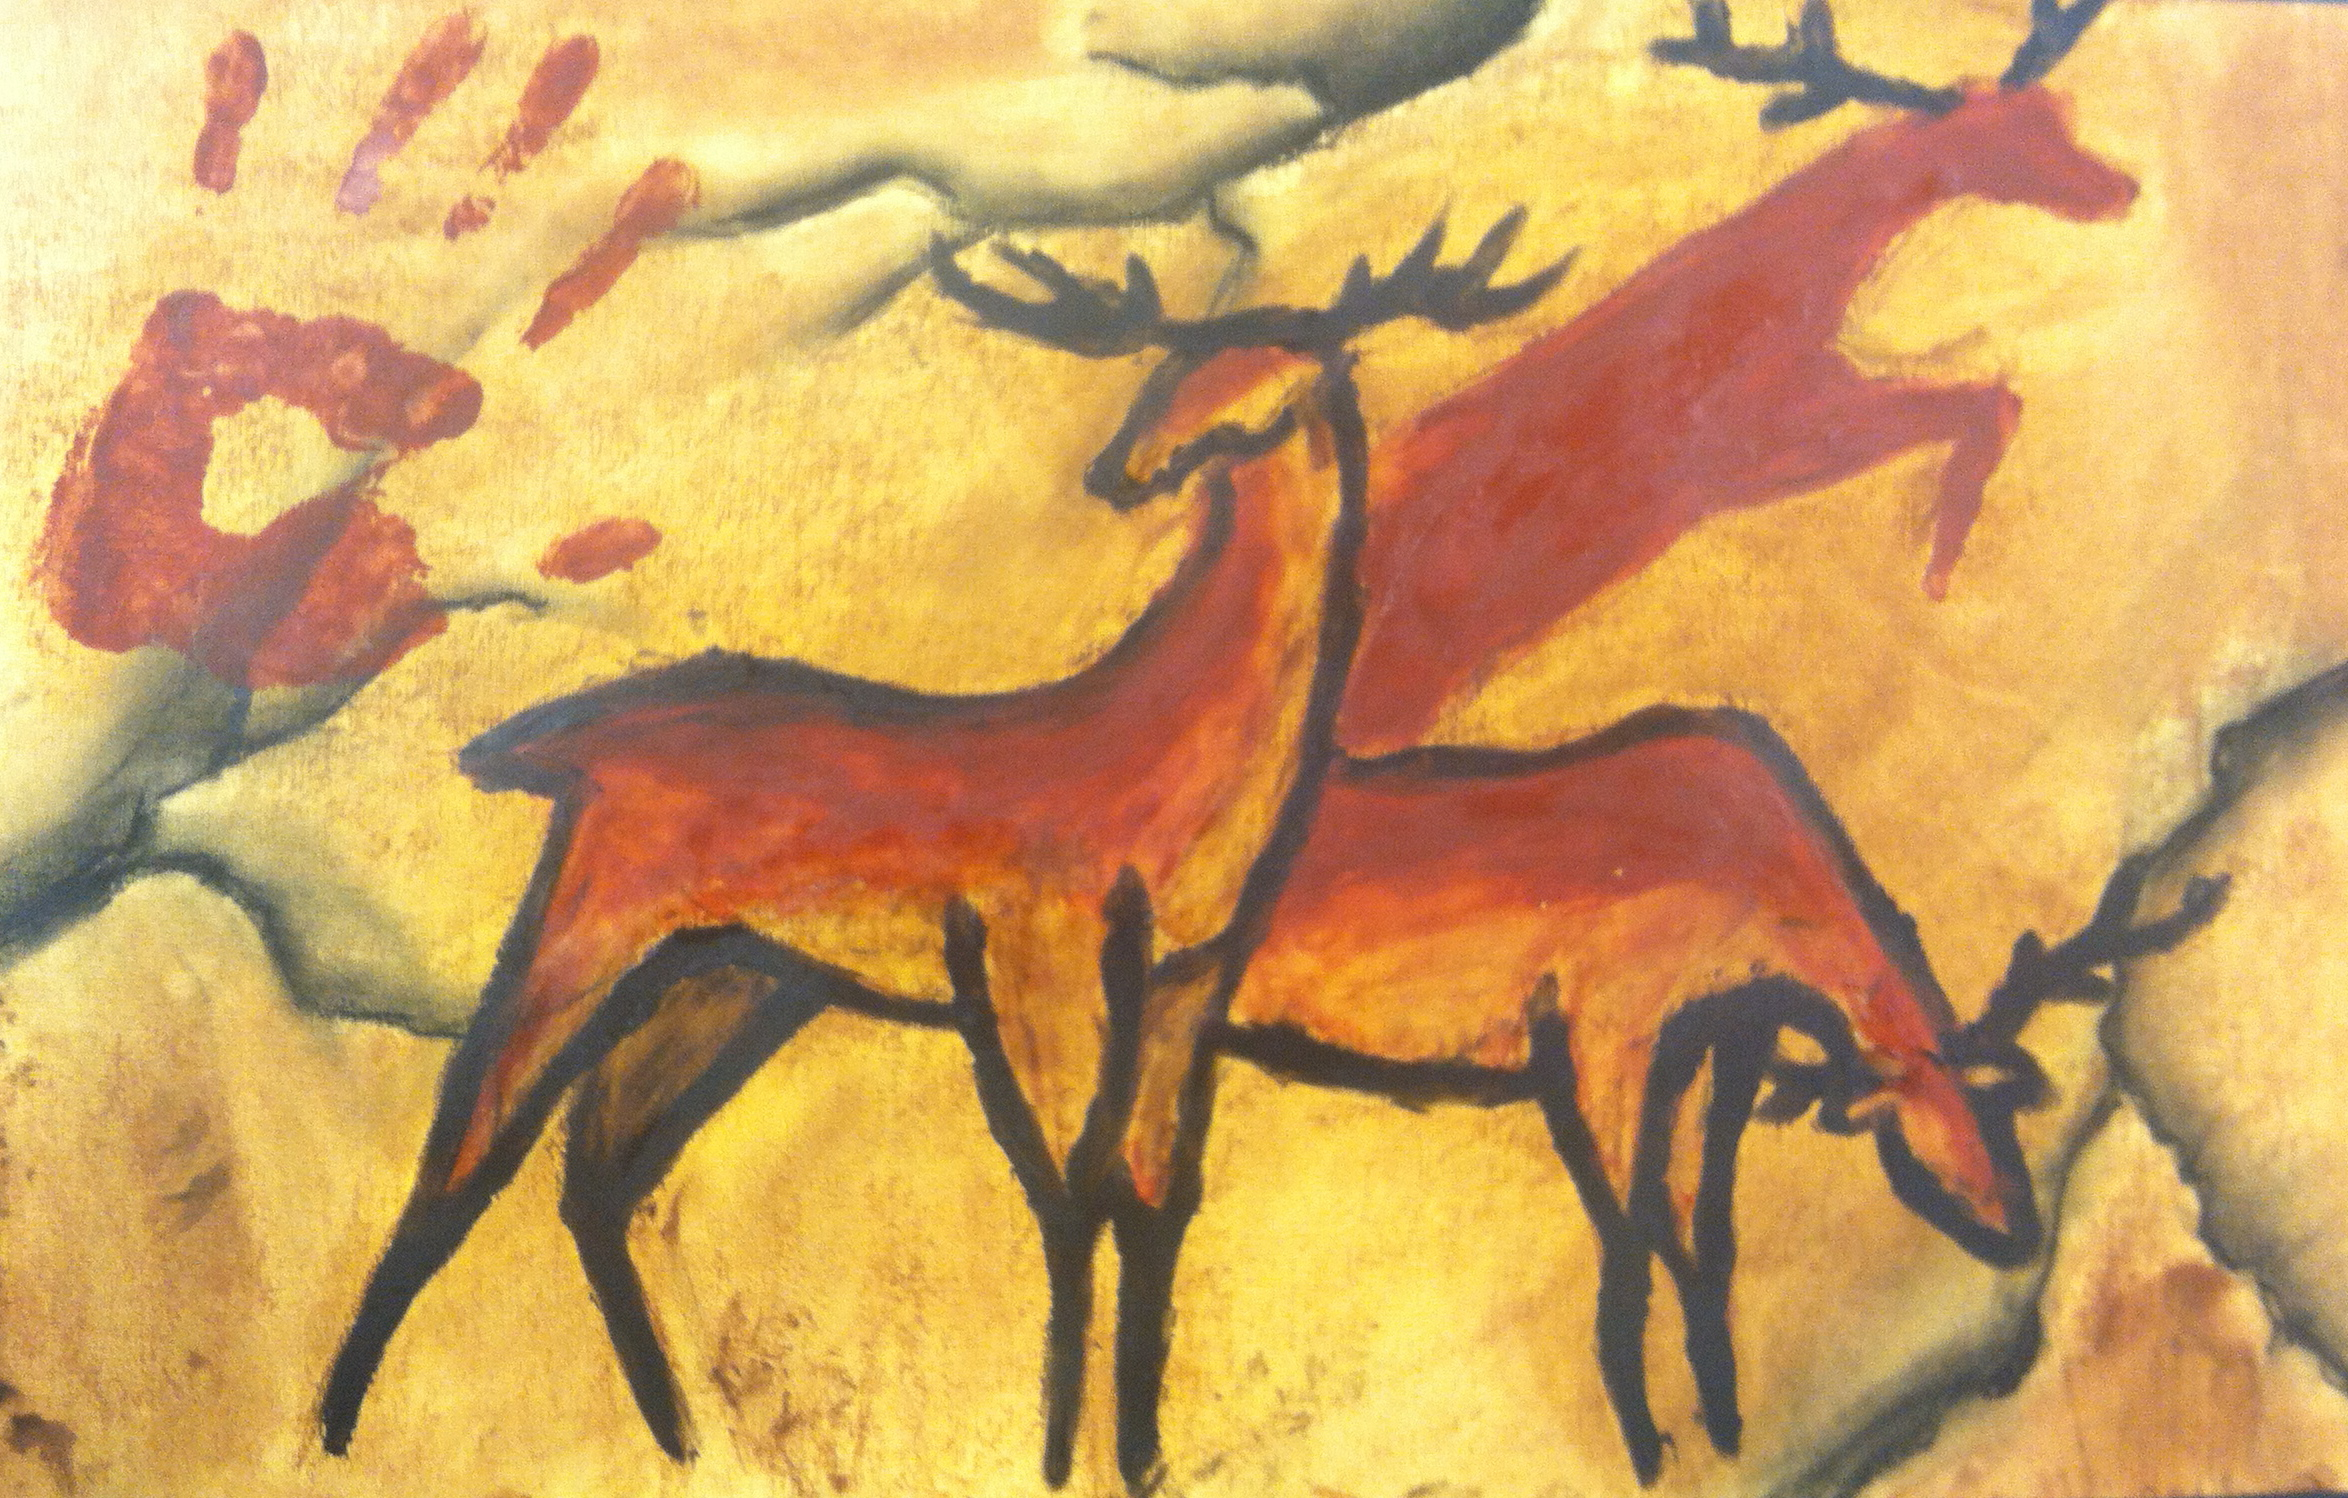 Animal Cave paintings